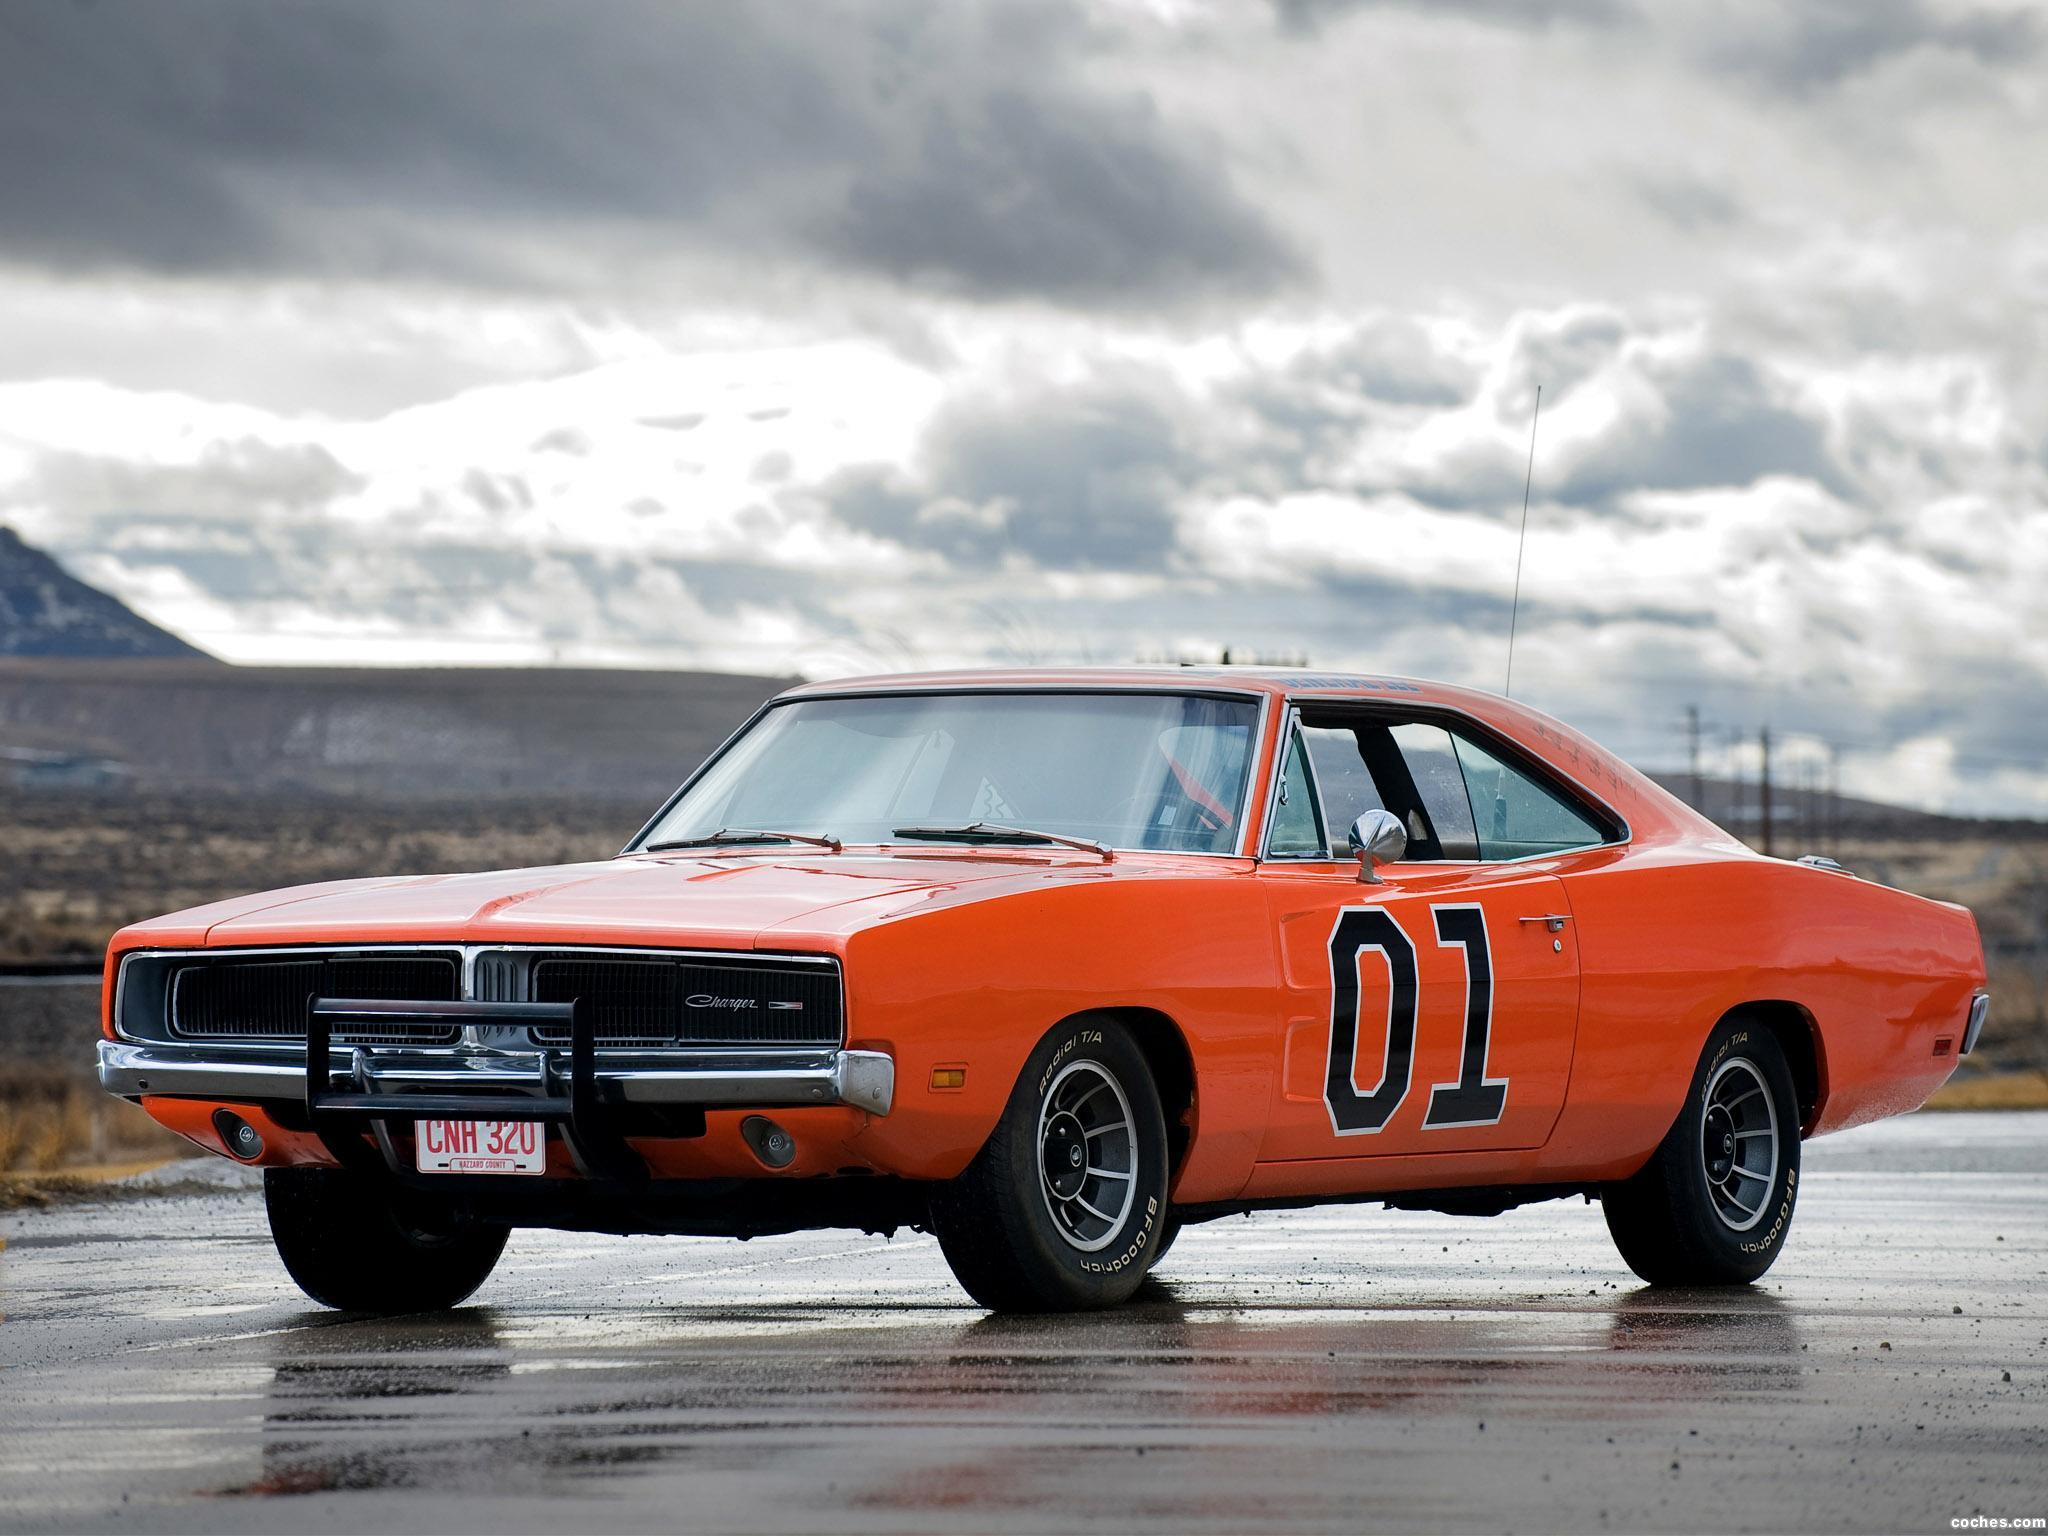 1969 Dodge Charger General Lee Classic Muscle Car For Sale: Fotos De Dodge Charger General Lee 1959